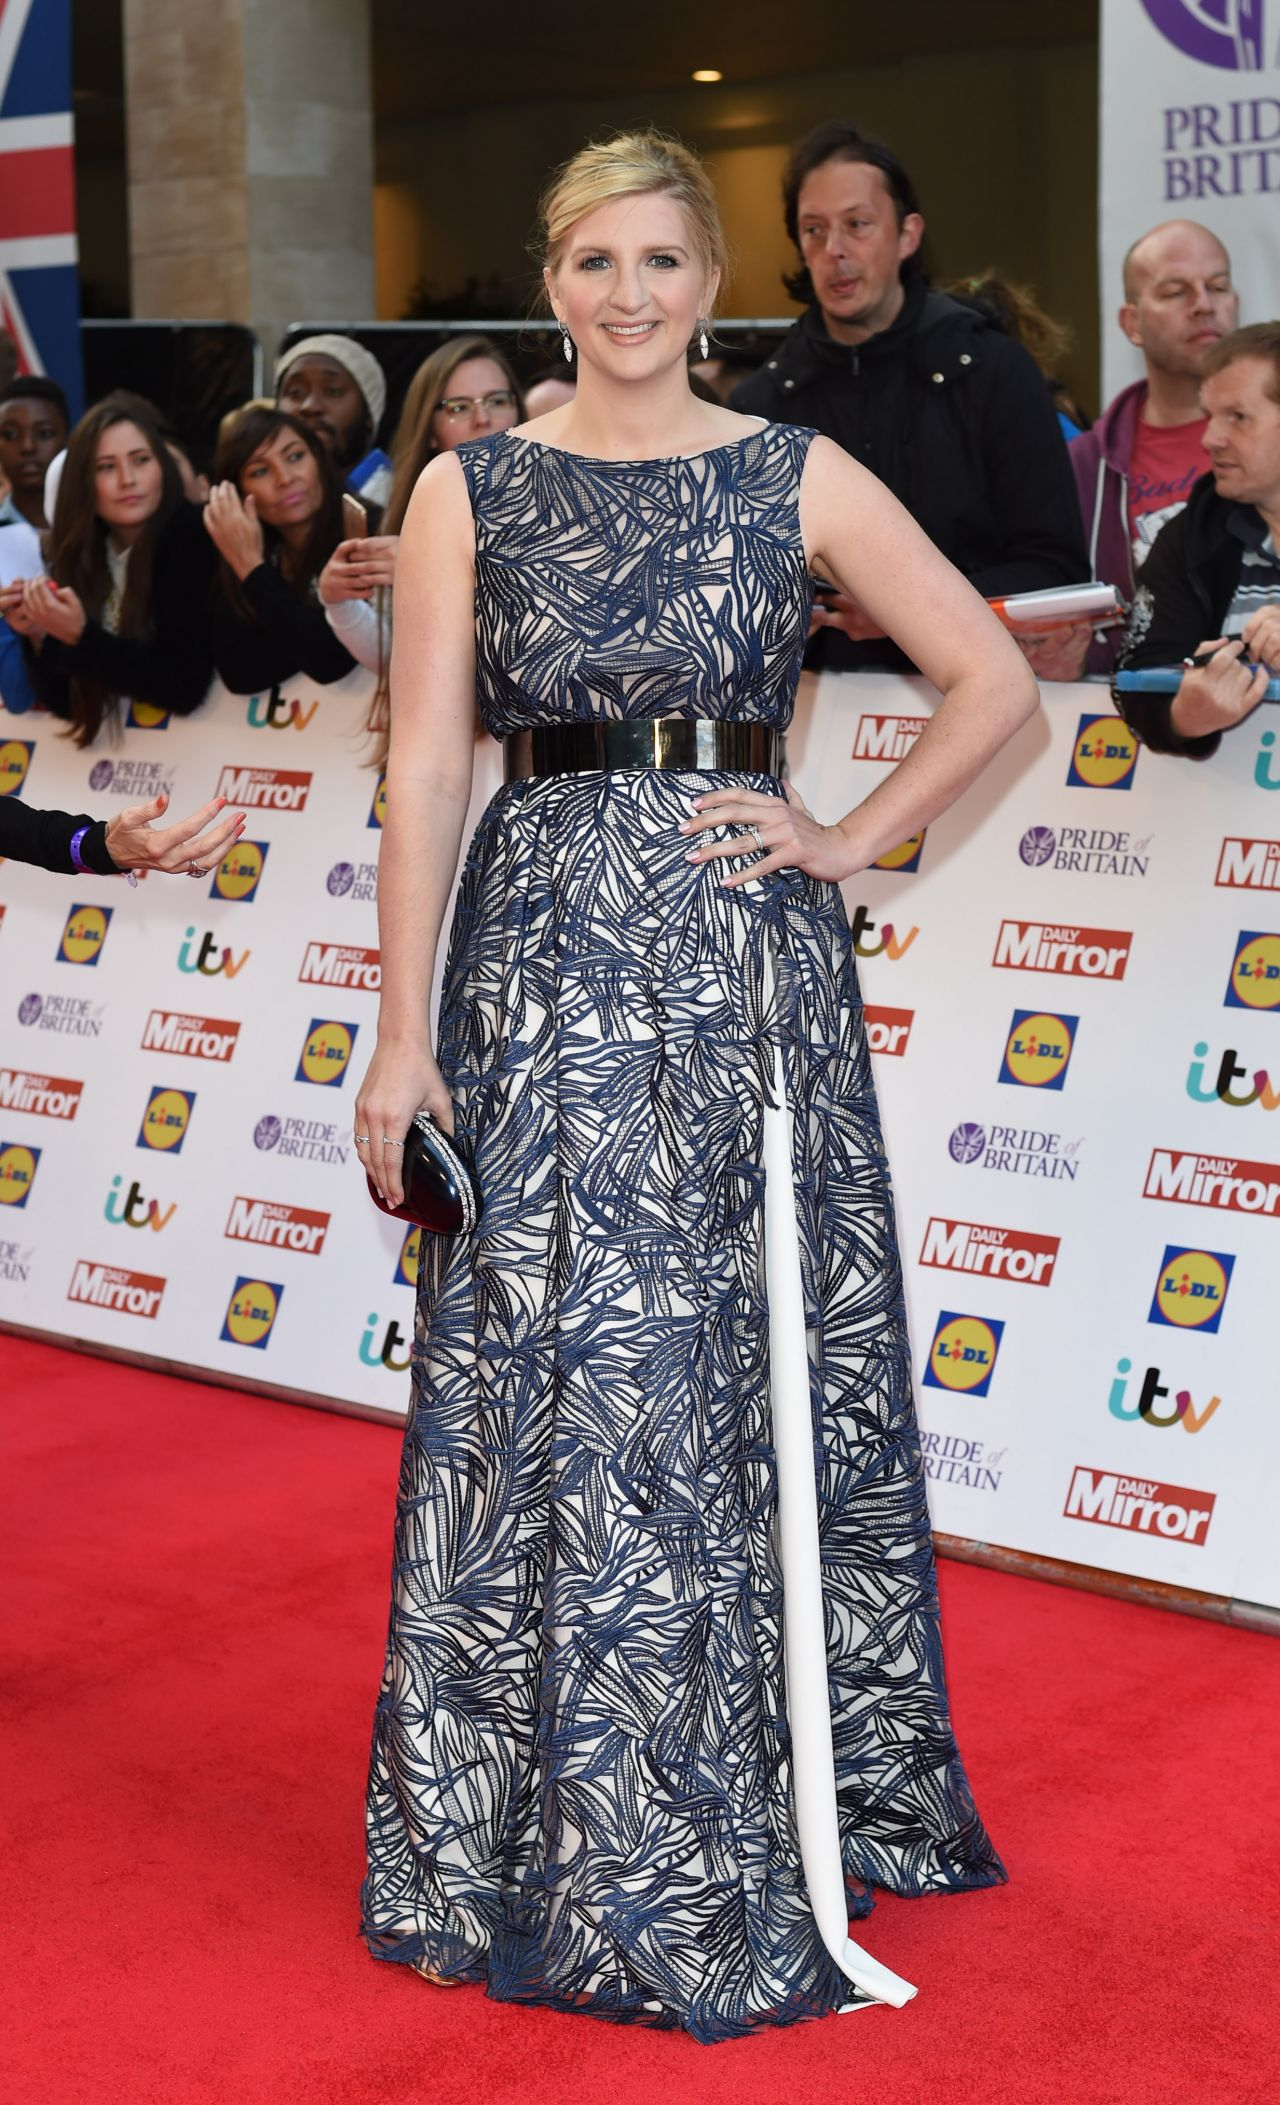 rebecca-adlington-pride-of-britain-awards-2015-in-london_1